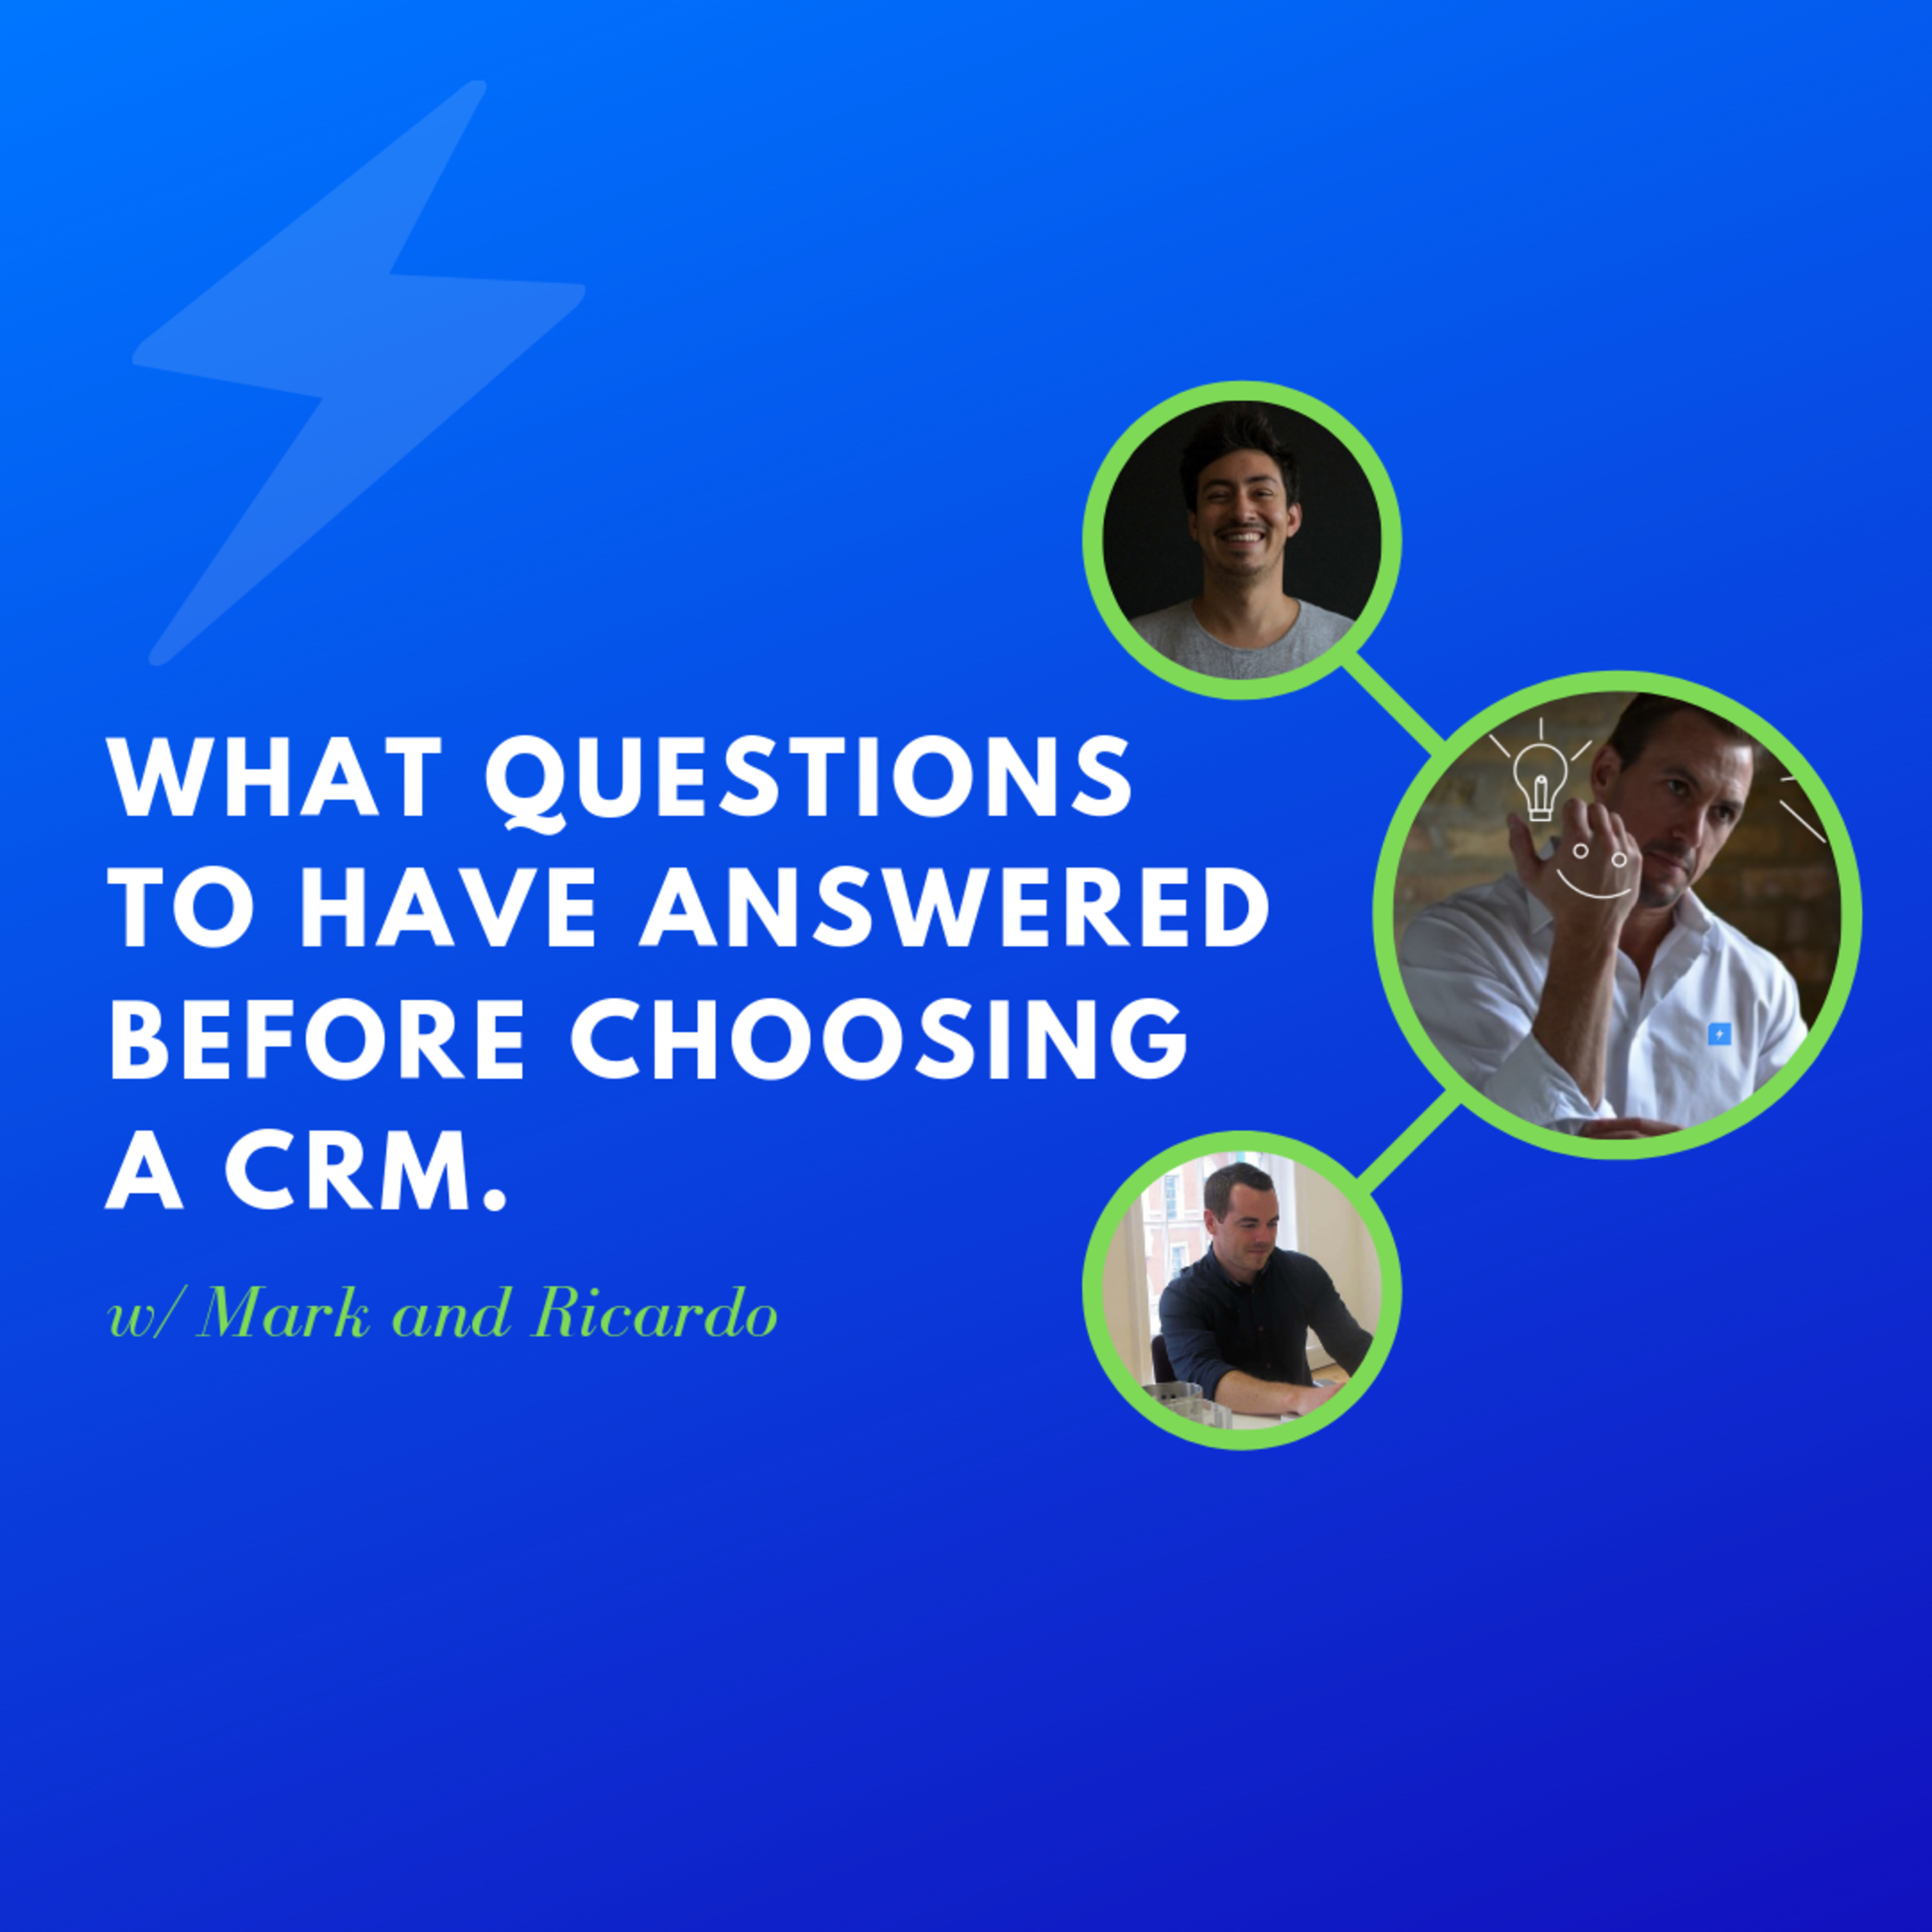 5 Questions To Answer Before Choosing A CRM - Mastermind Discussion